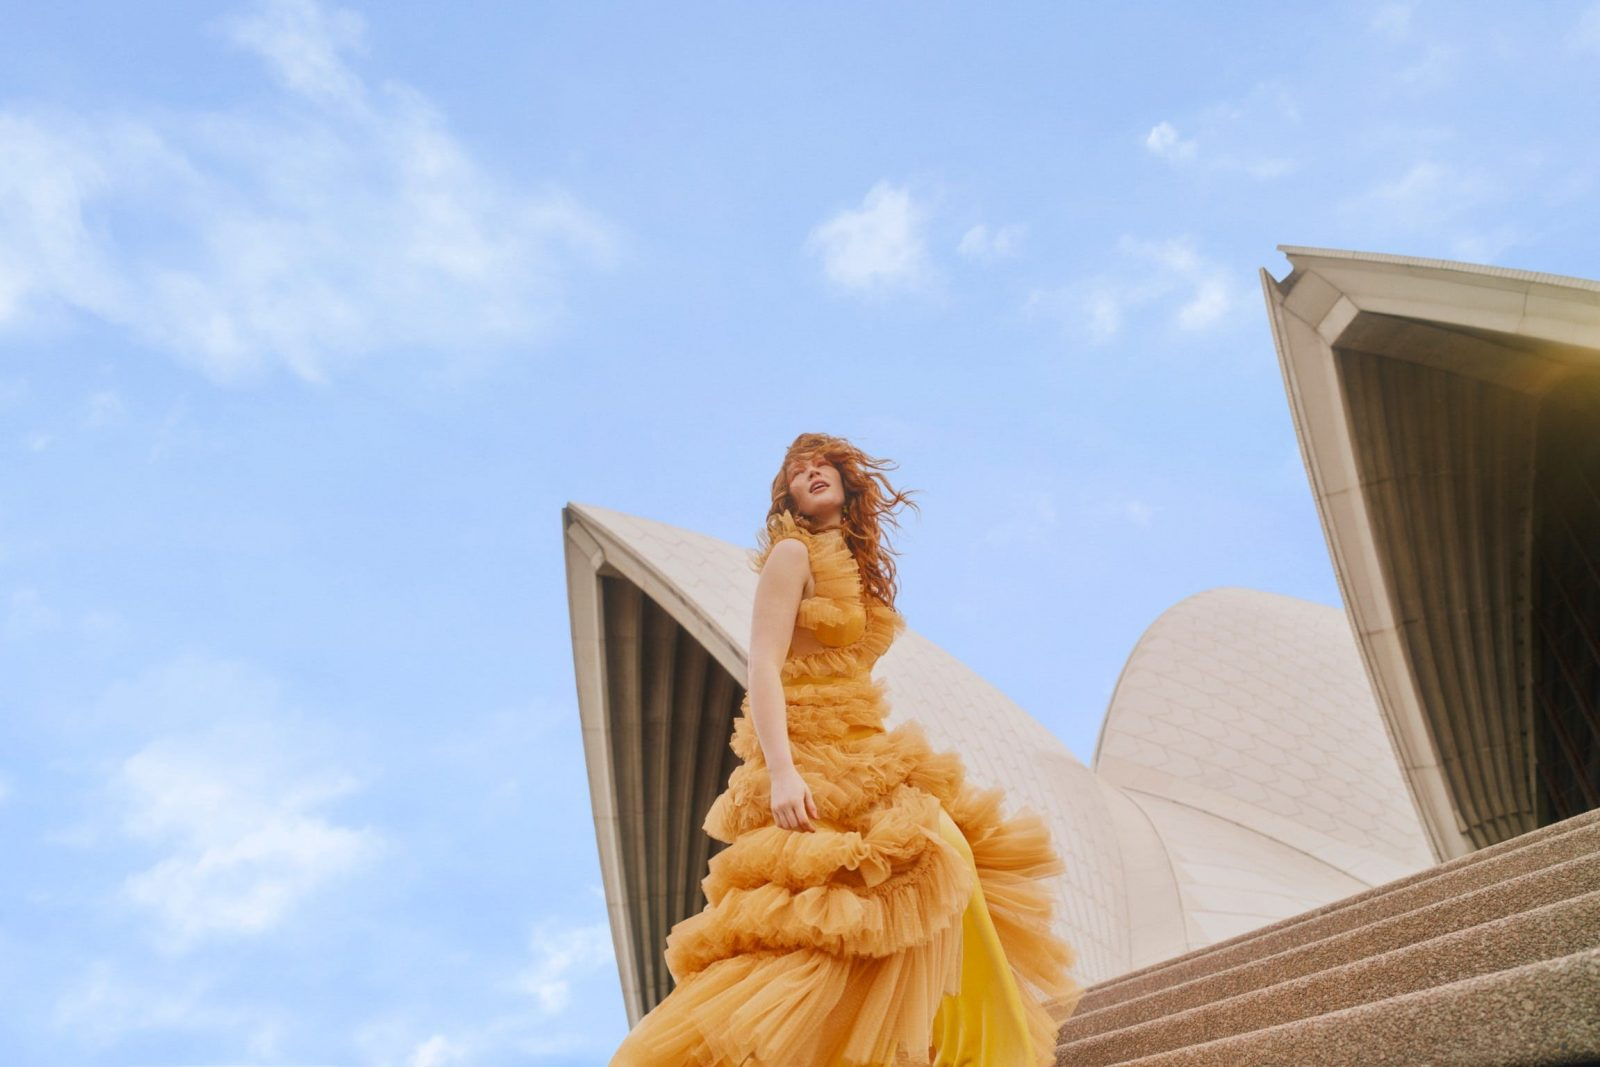 A lady in yellow dress outside the Opera House sails